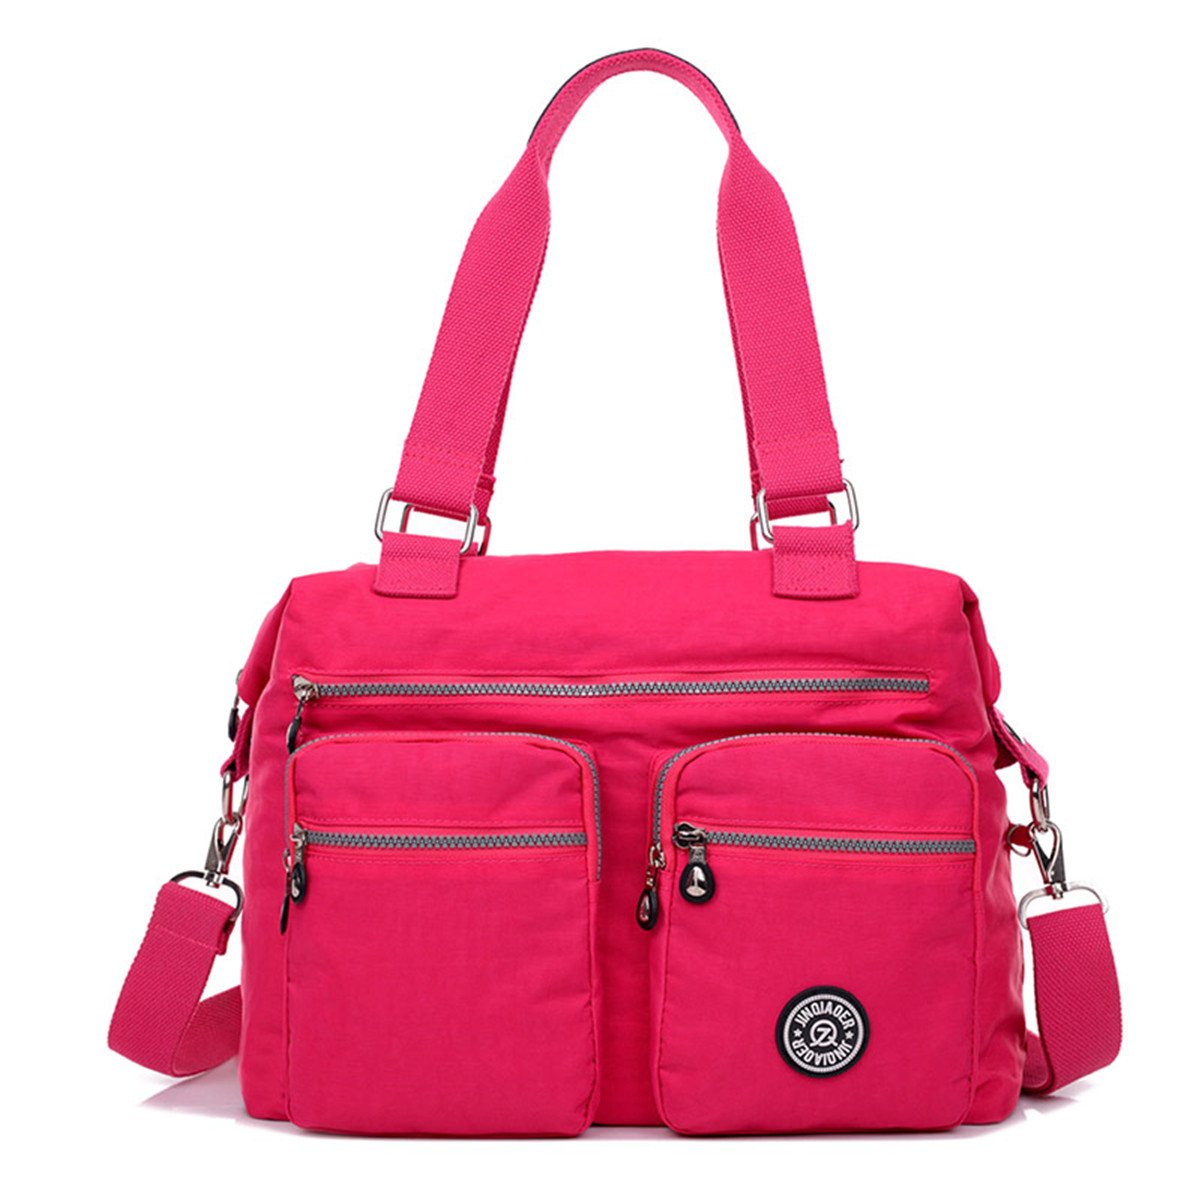 pink Tiny Chou Lightweight Water Resistant Nylon Totes Crossbody Bag Shoulder Bag with Pockets Large